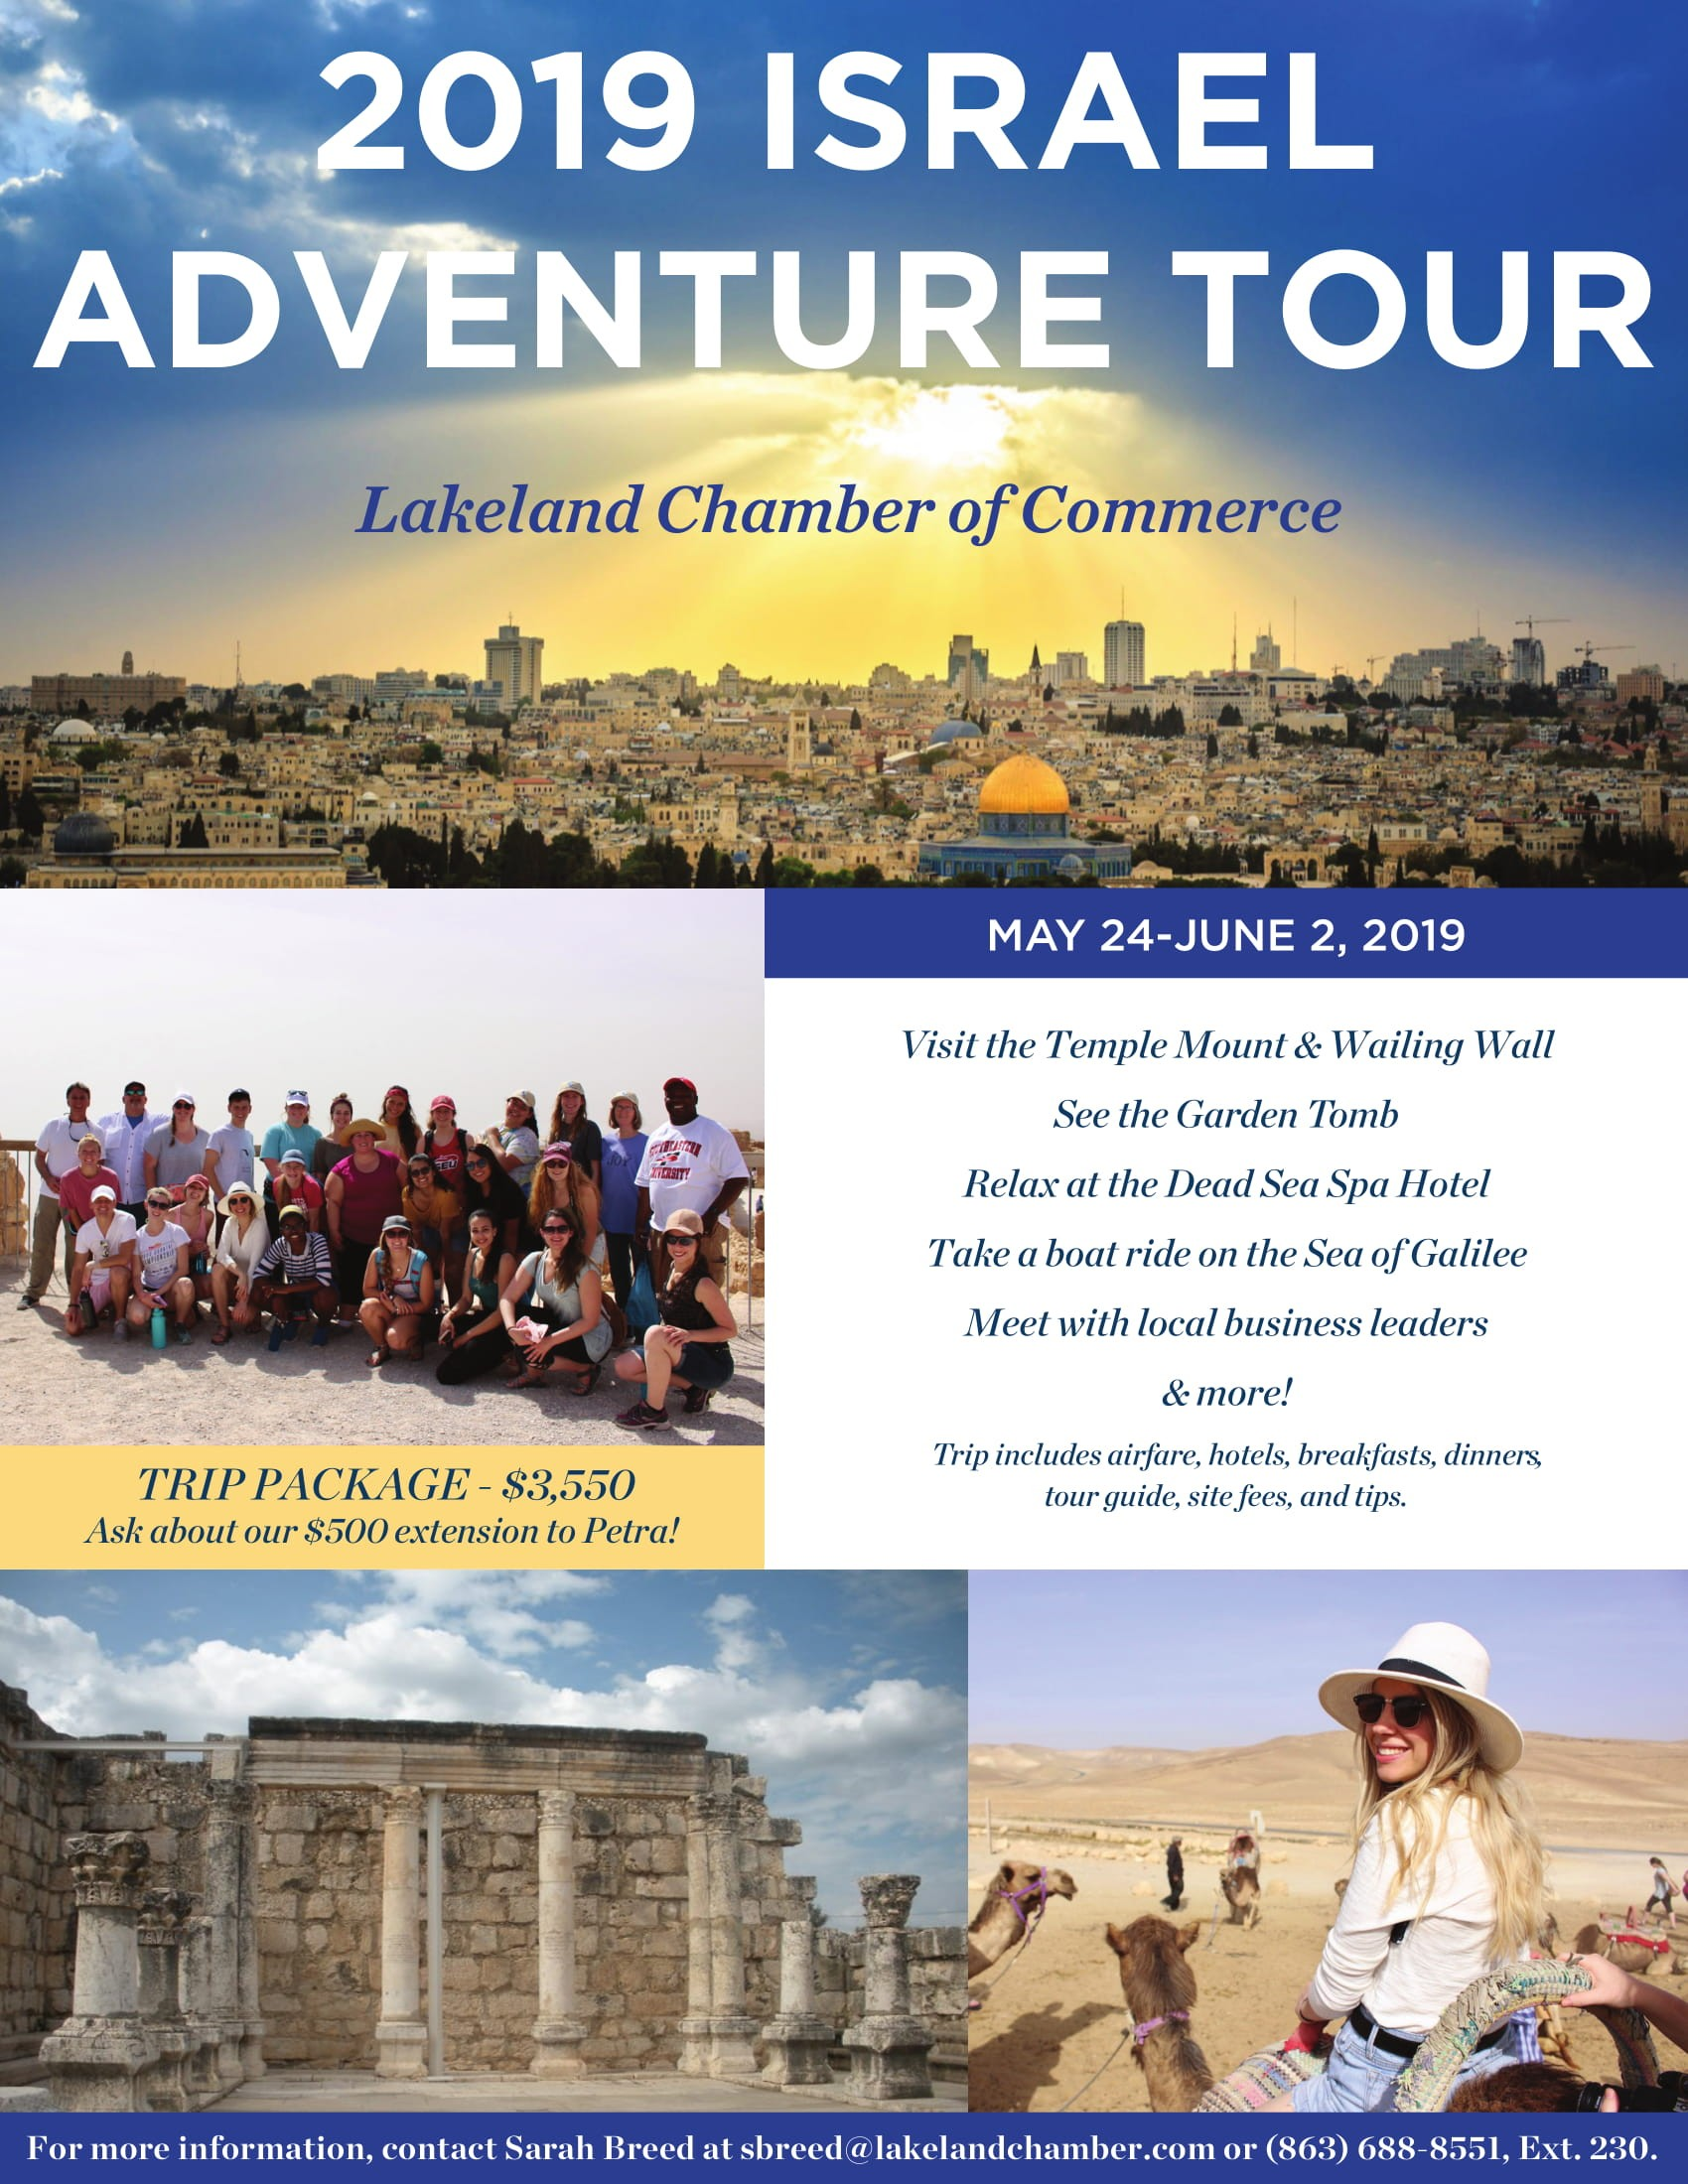 March 2019 Calendar Landscape Más Arriba-a-fecha Travel with the Lakeland Chamber the israel Adventure May 24 Of March 2019 Calendar Landscape Recientes 2018 Hubble Space Telescope Advent Calendar the atlantic